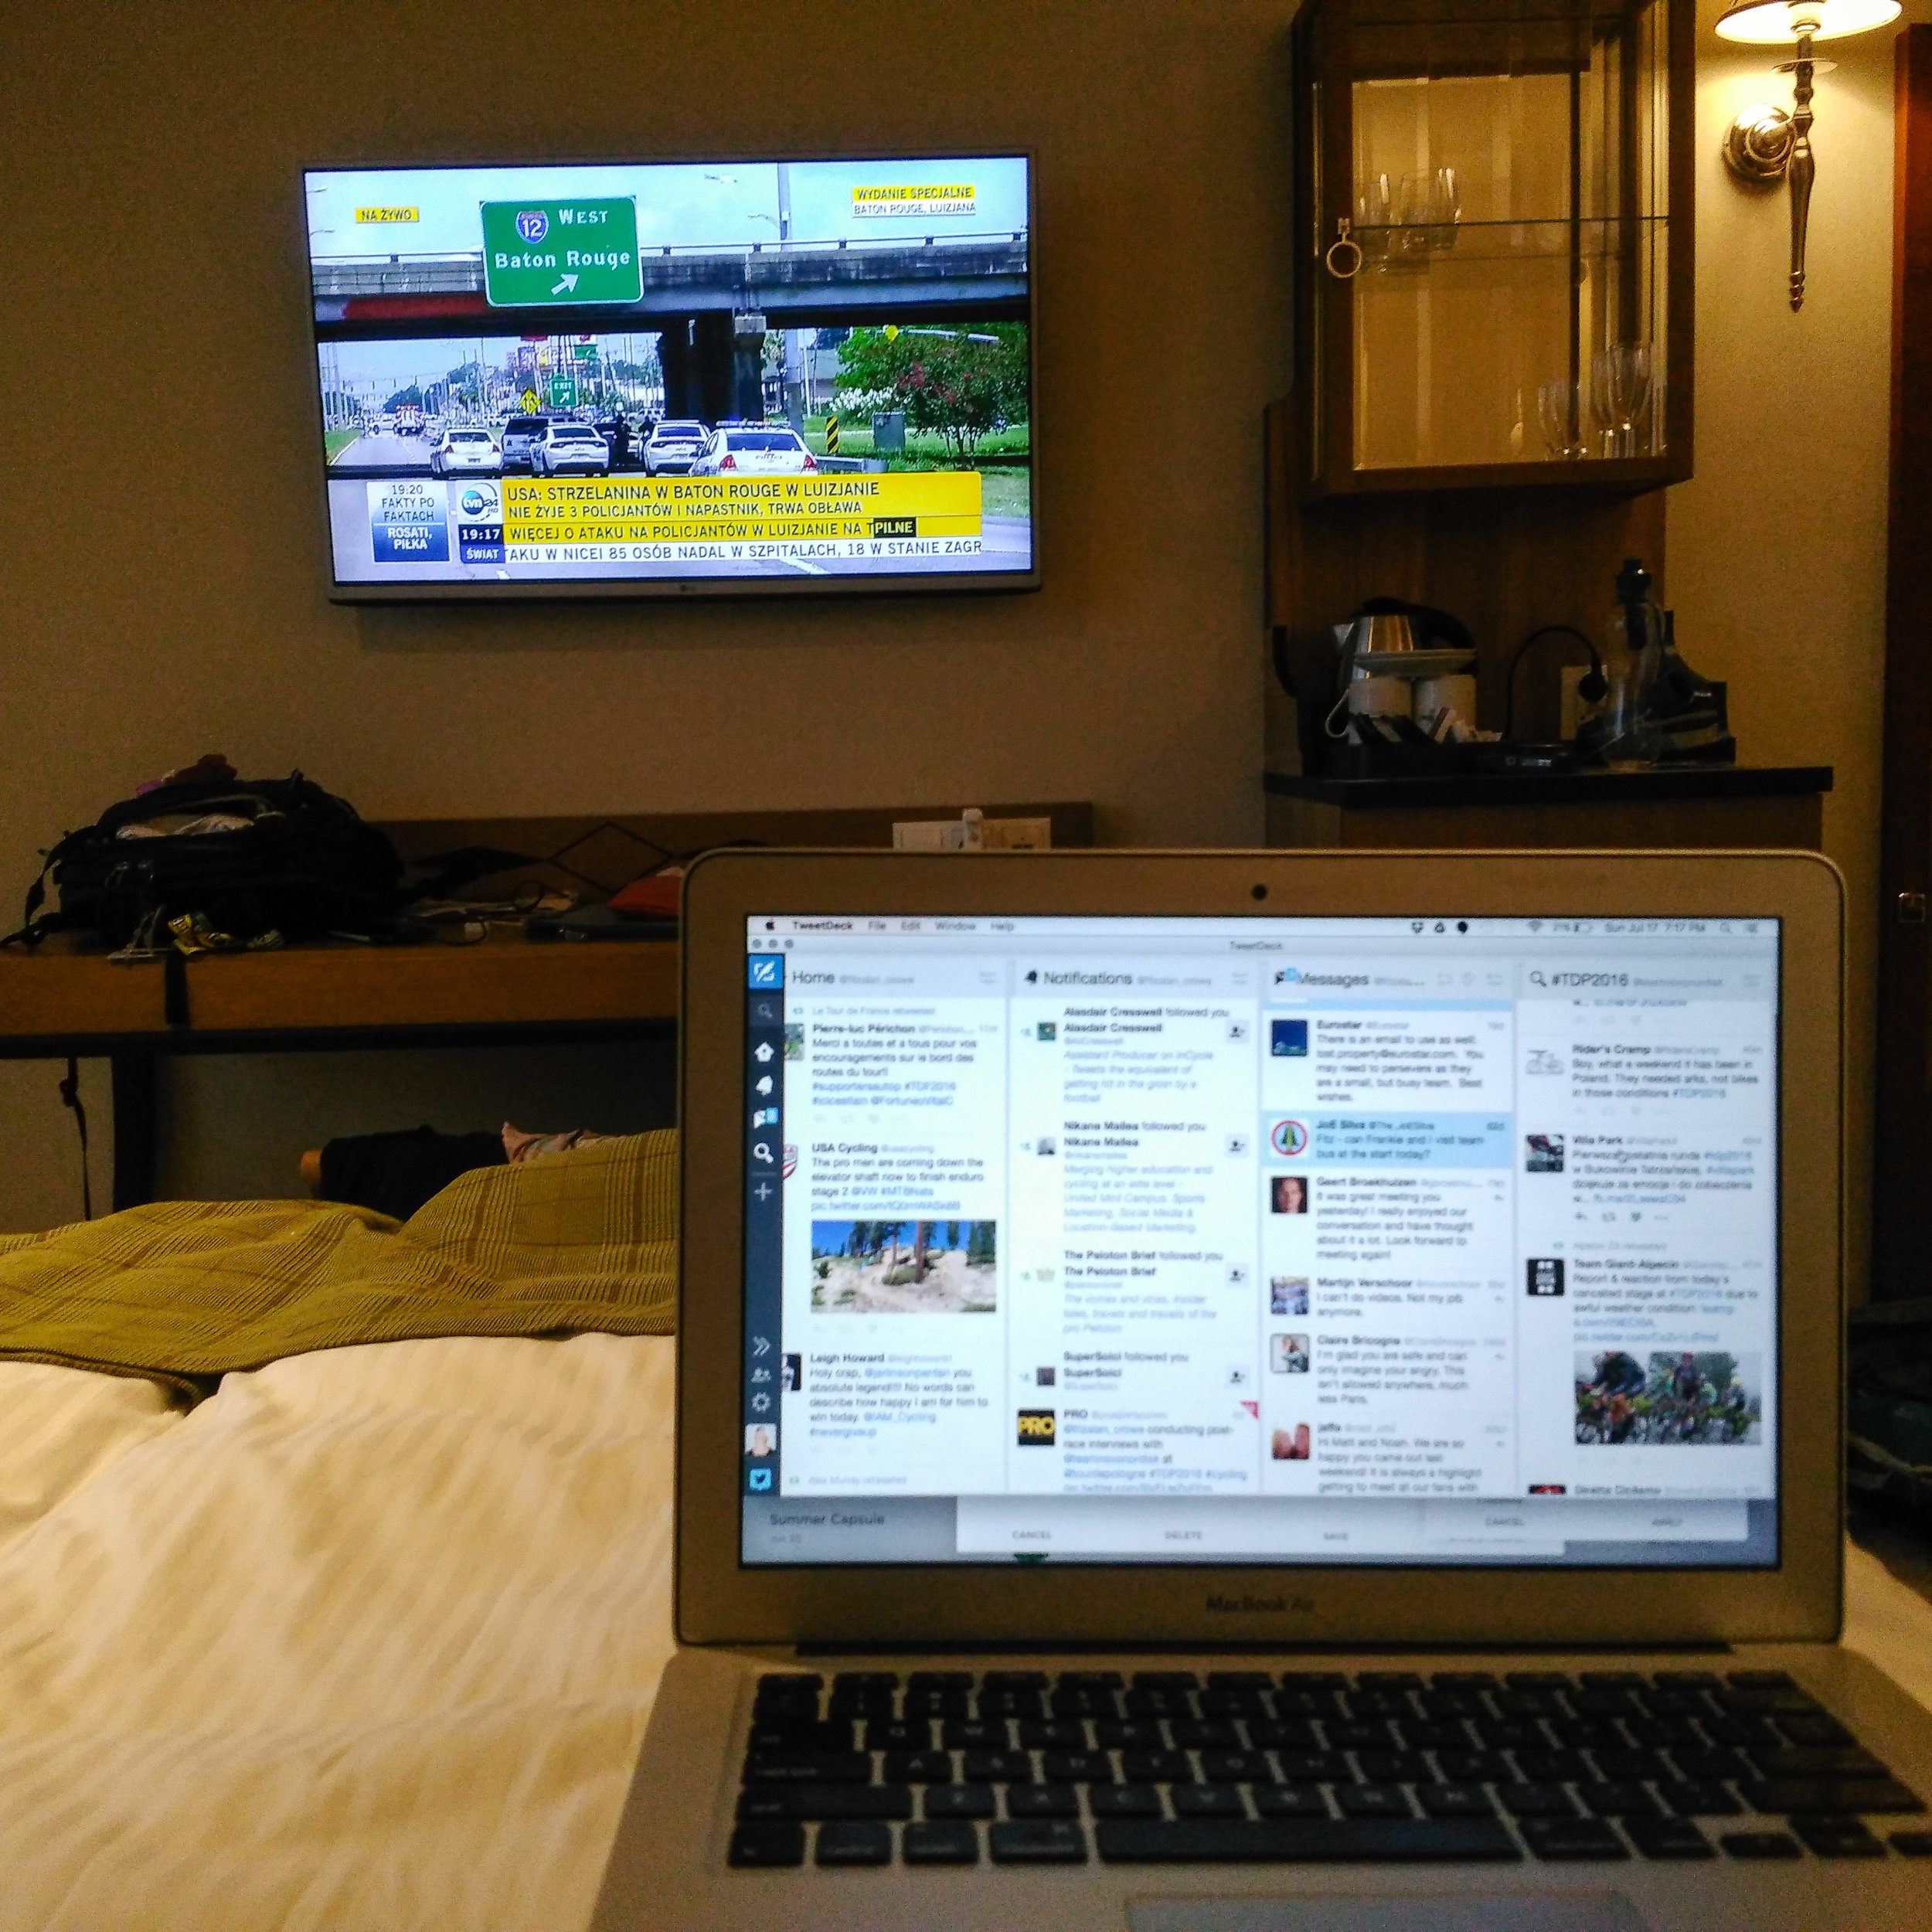 The hotel room bed is one of my favorite offices. Rarely, rarely, rarely do I turn on the TV. I think some event had happened in the US and I actually had CNN, so I followed the news as I worked on a race report and stayed up to date on bike racing via TweetDeck.